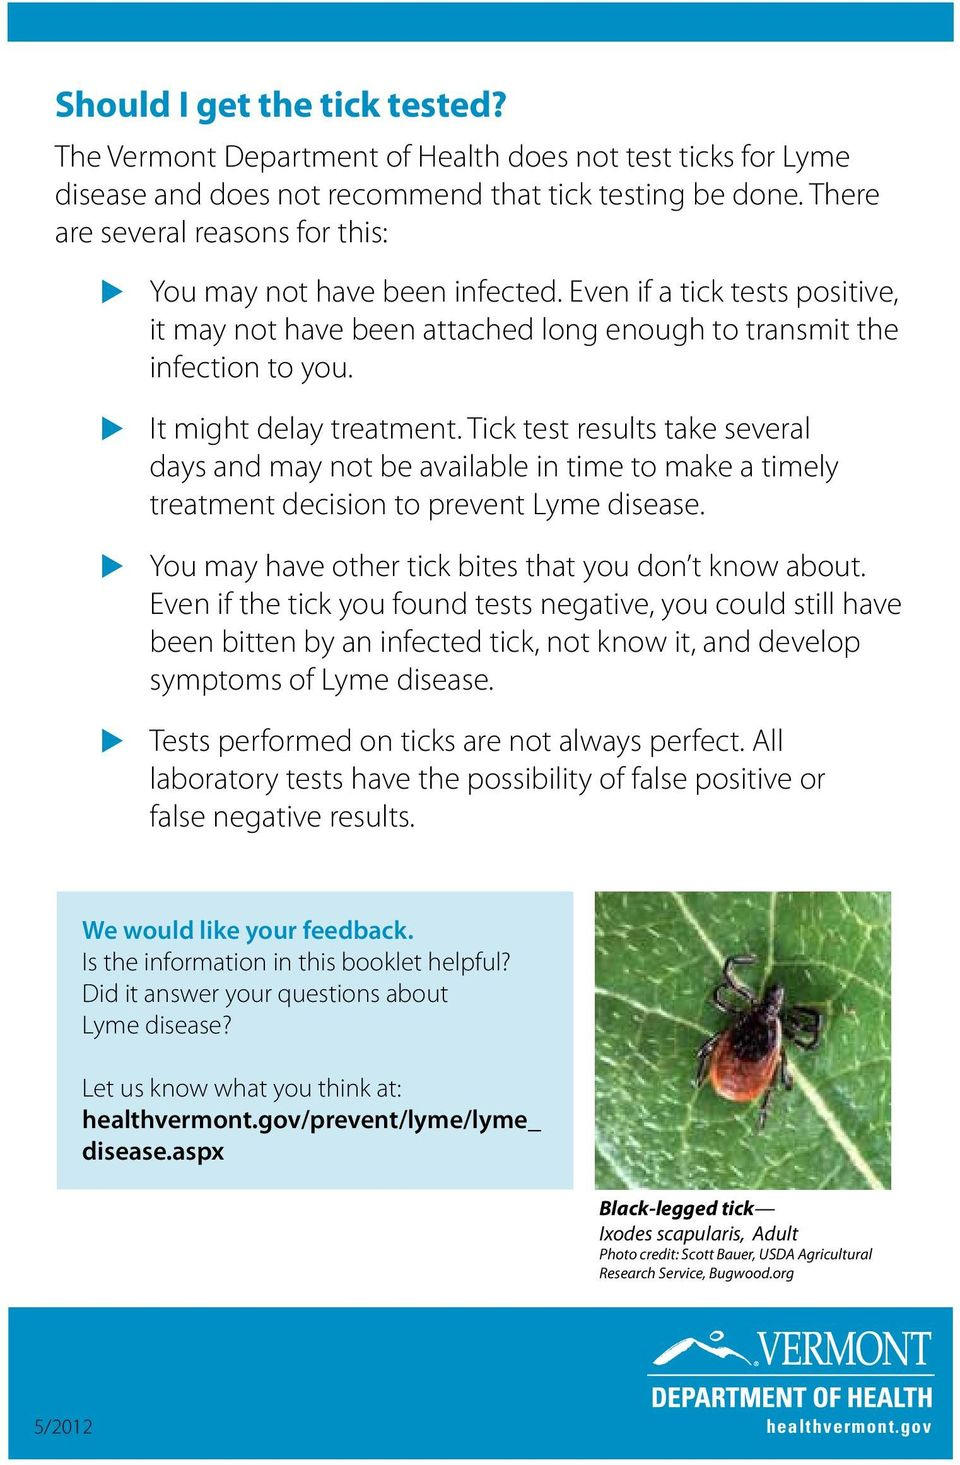 u u u It might delay treatment. Tick test results take several days and may not be available in time to make a timely treatment decision to prevent Lyme disease.